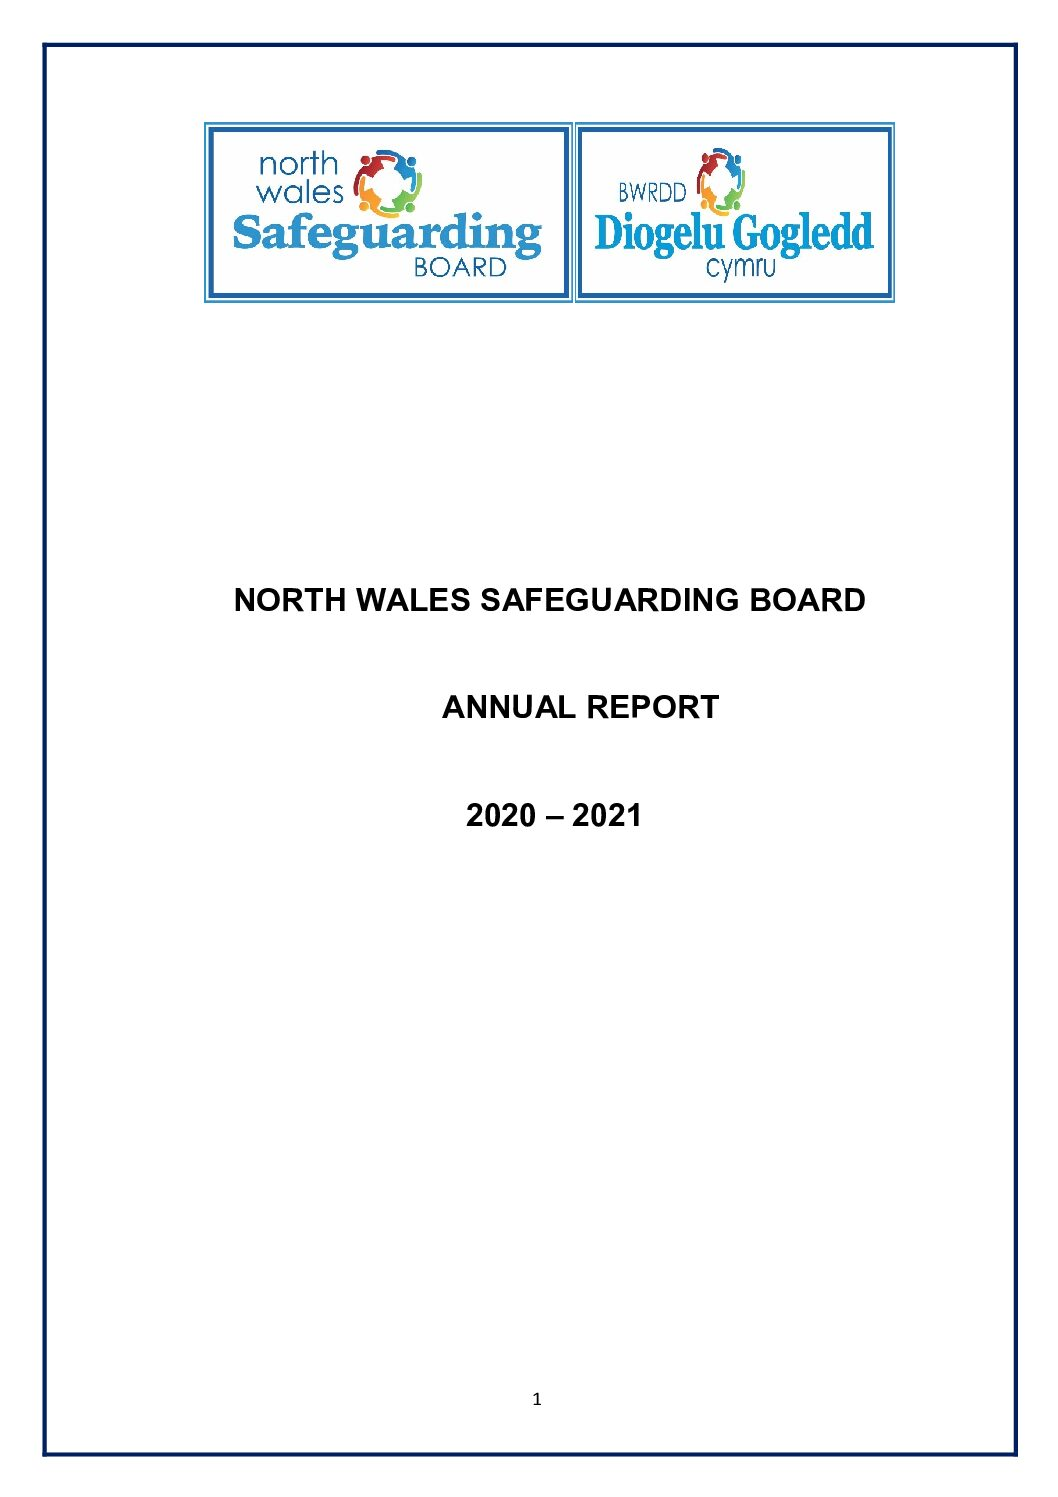 NWSB Annual Report 2020/2021